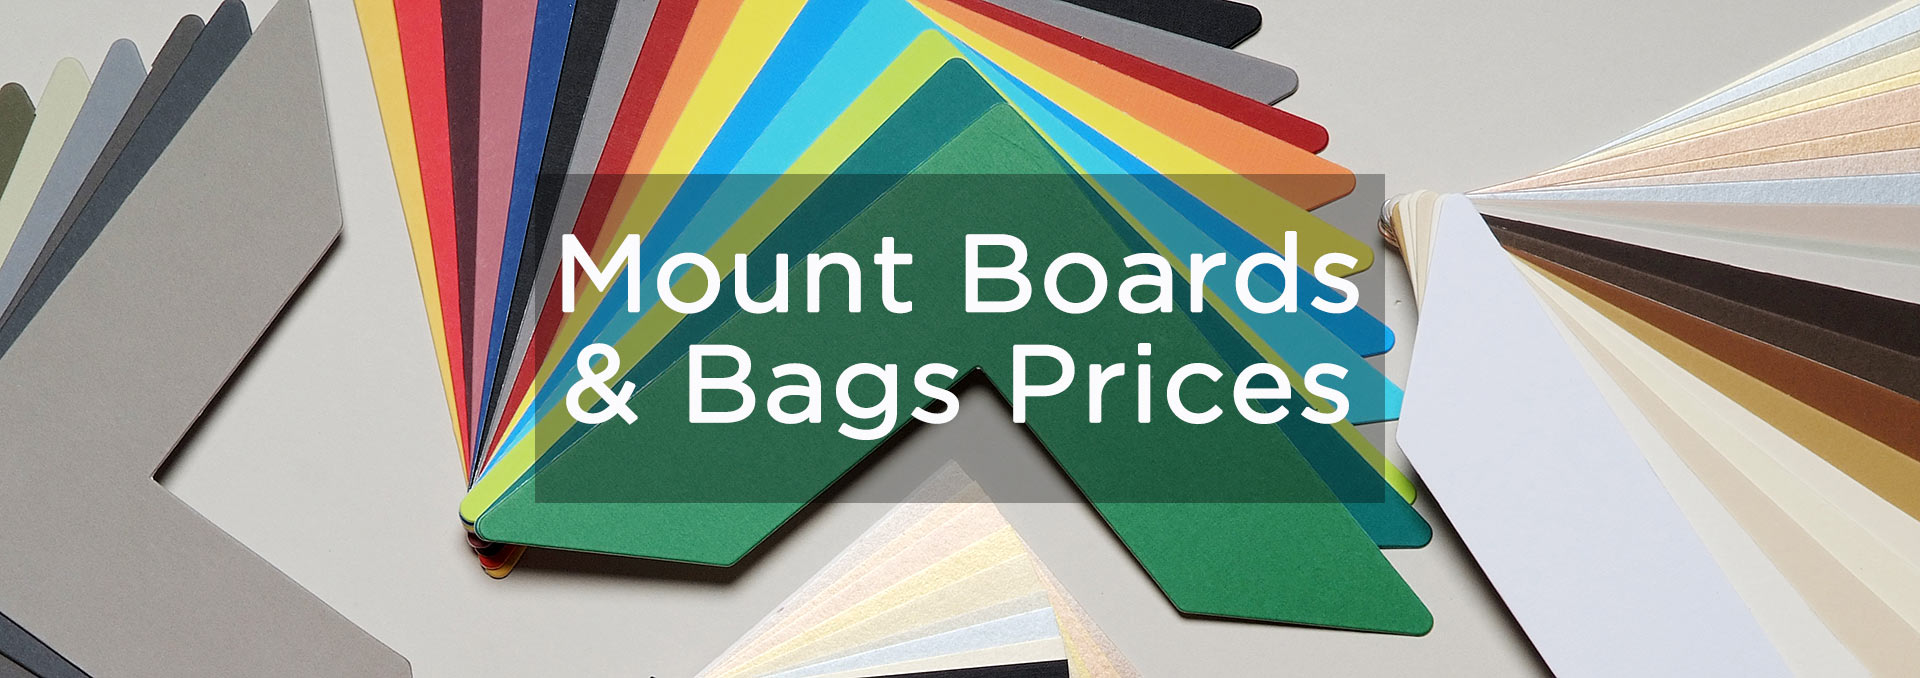 mount-boards-and-bags-prices